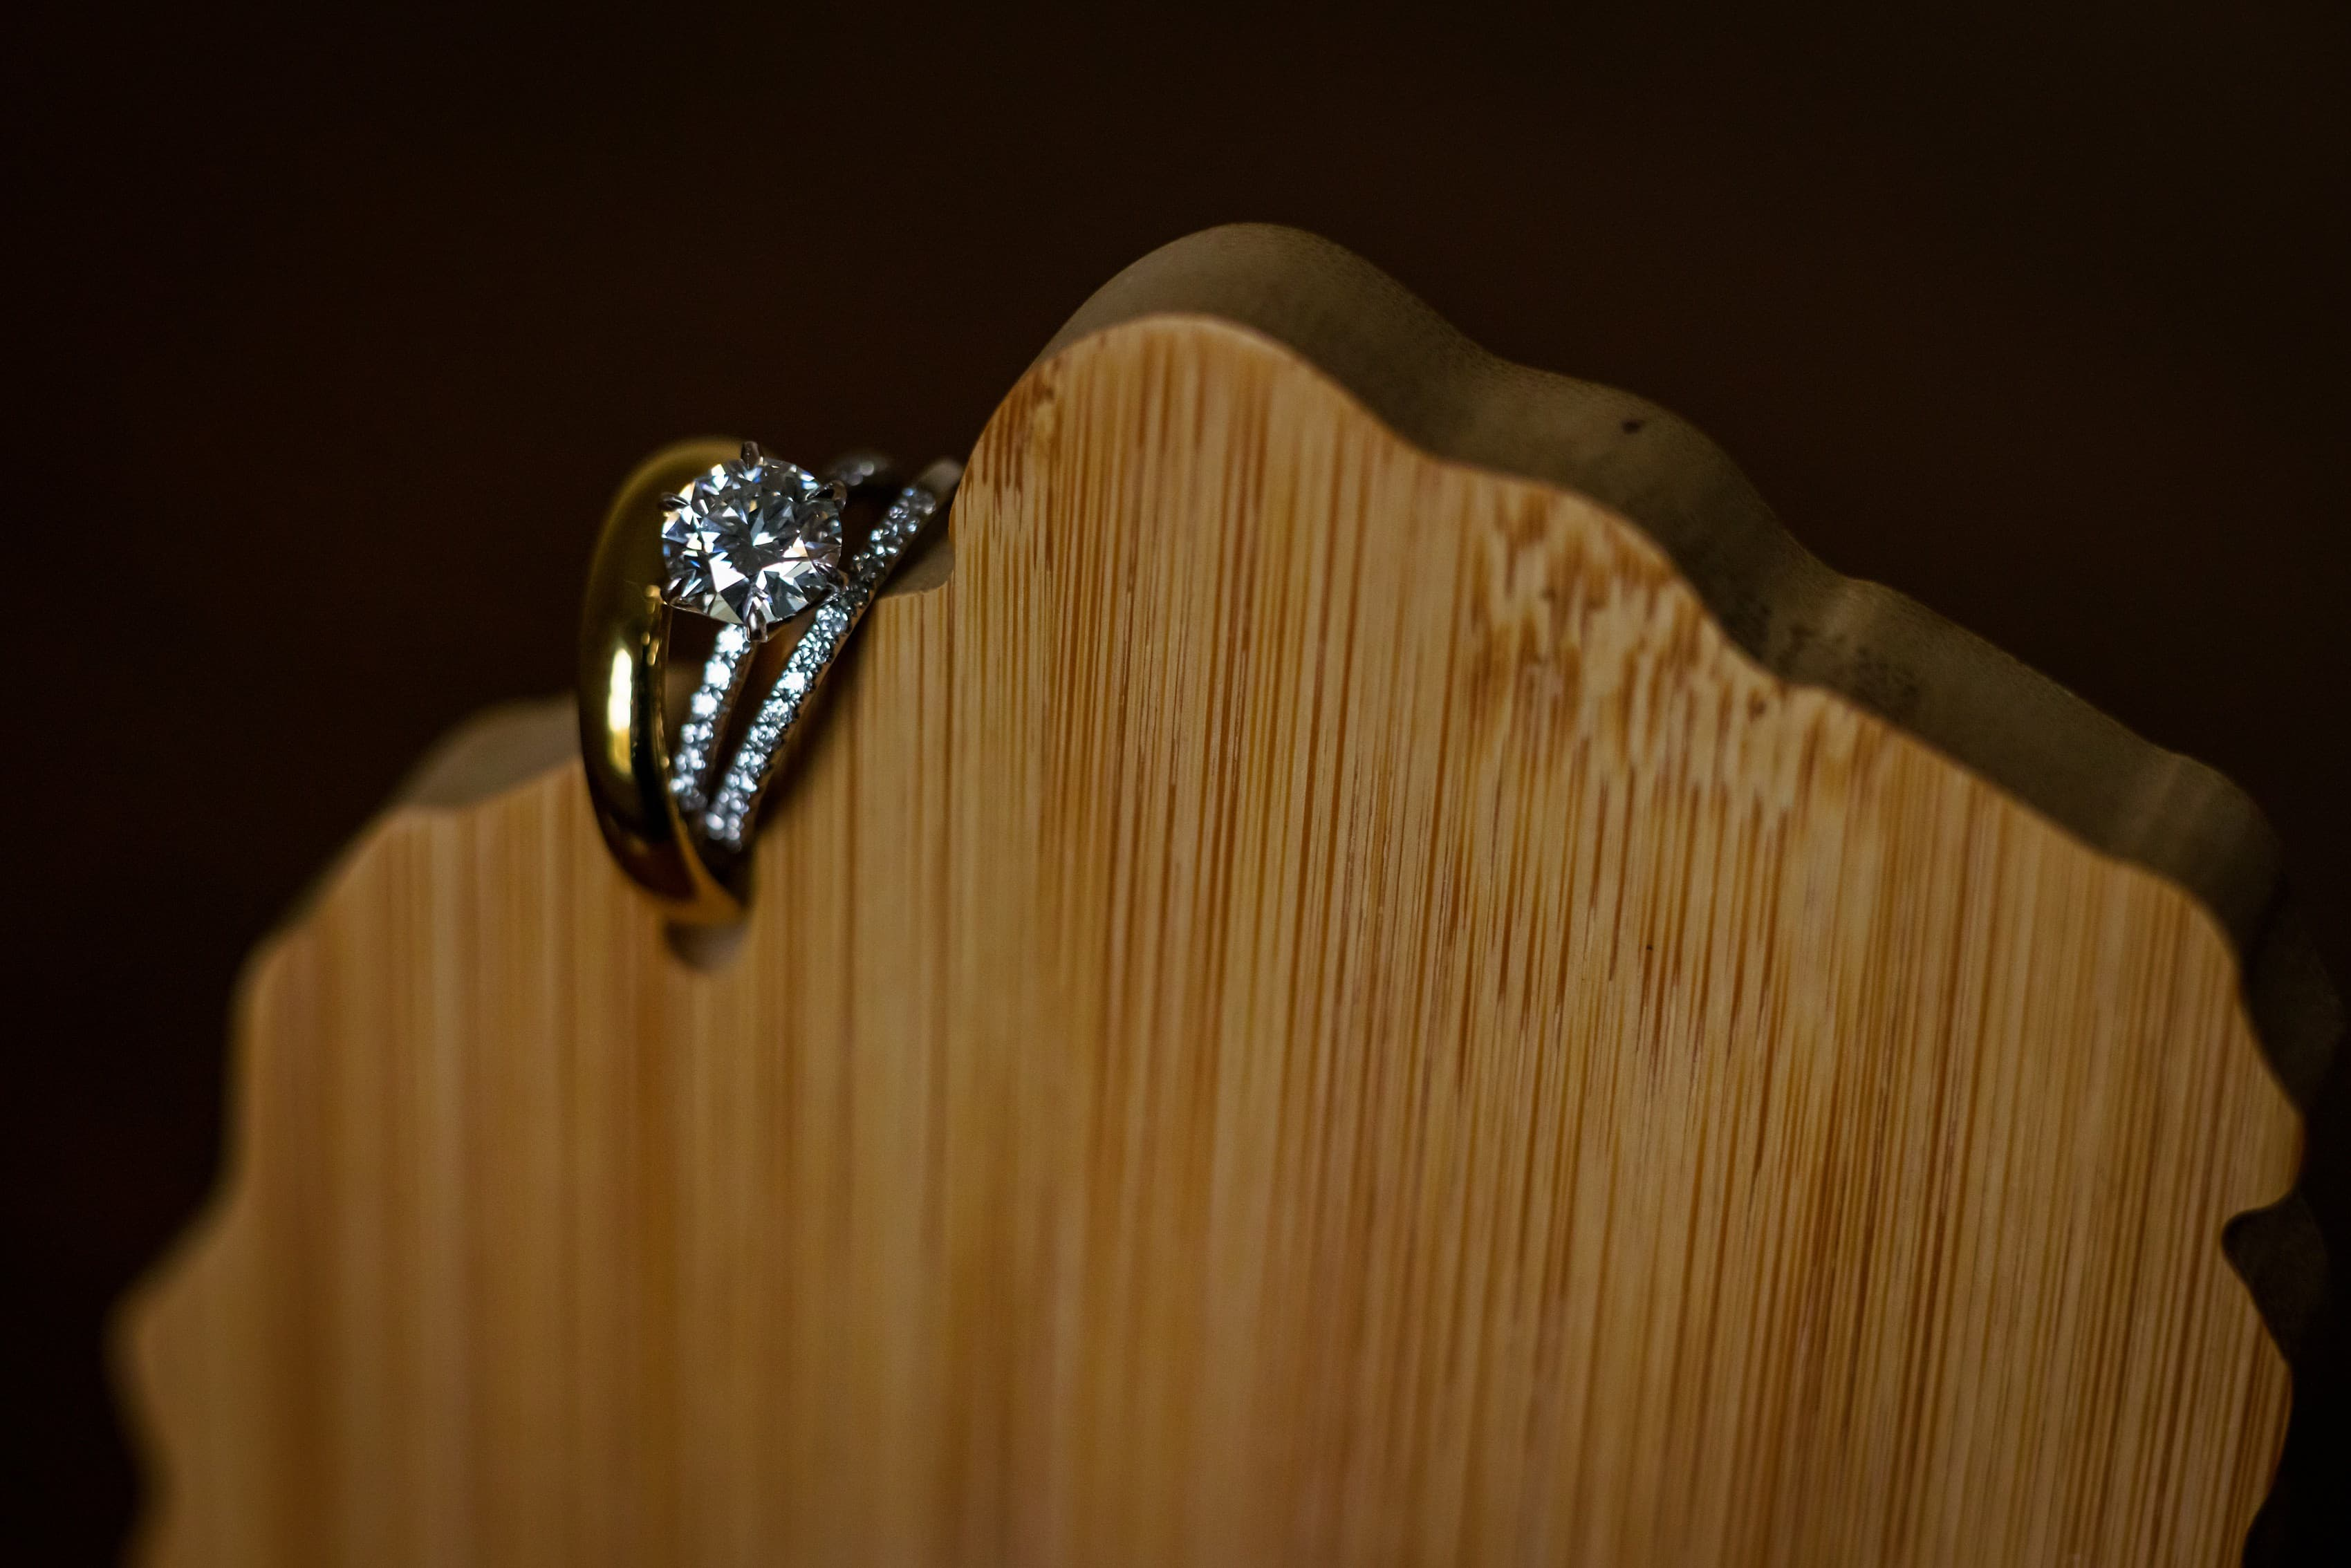 wedding rings are propped on wooden carving of michigan